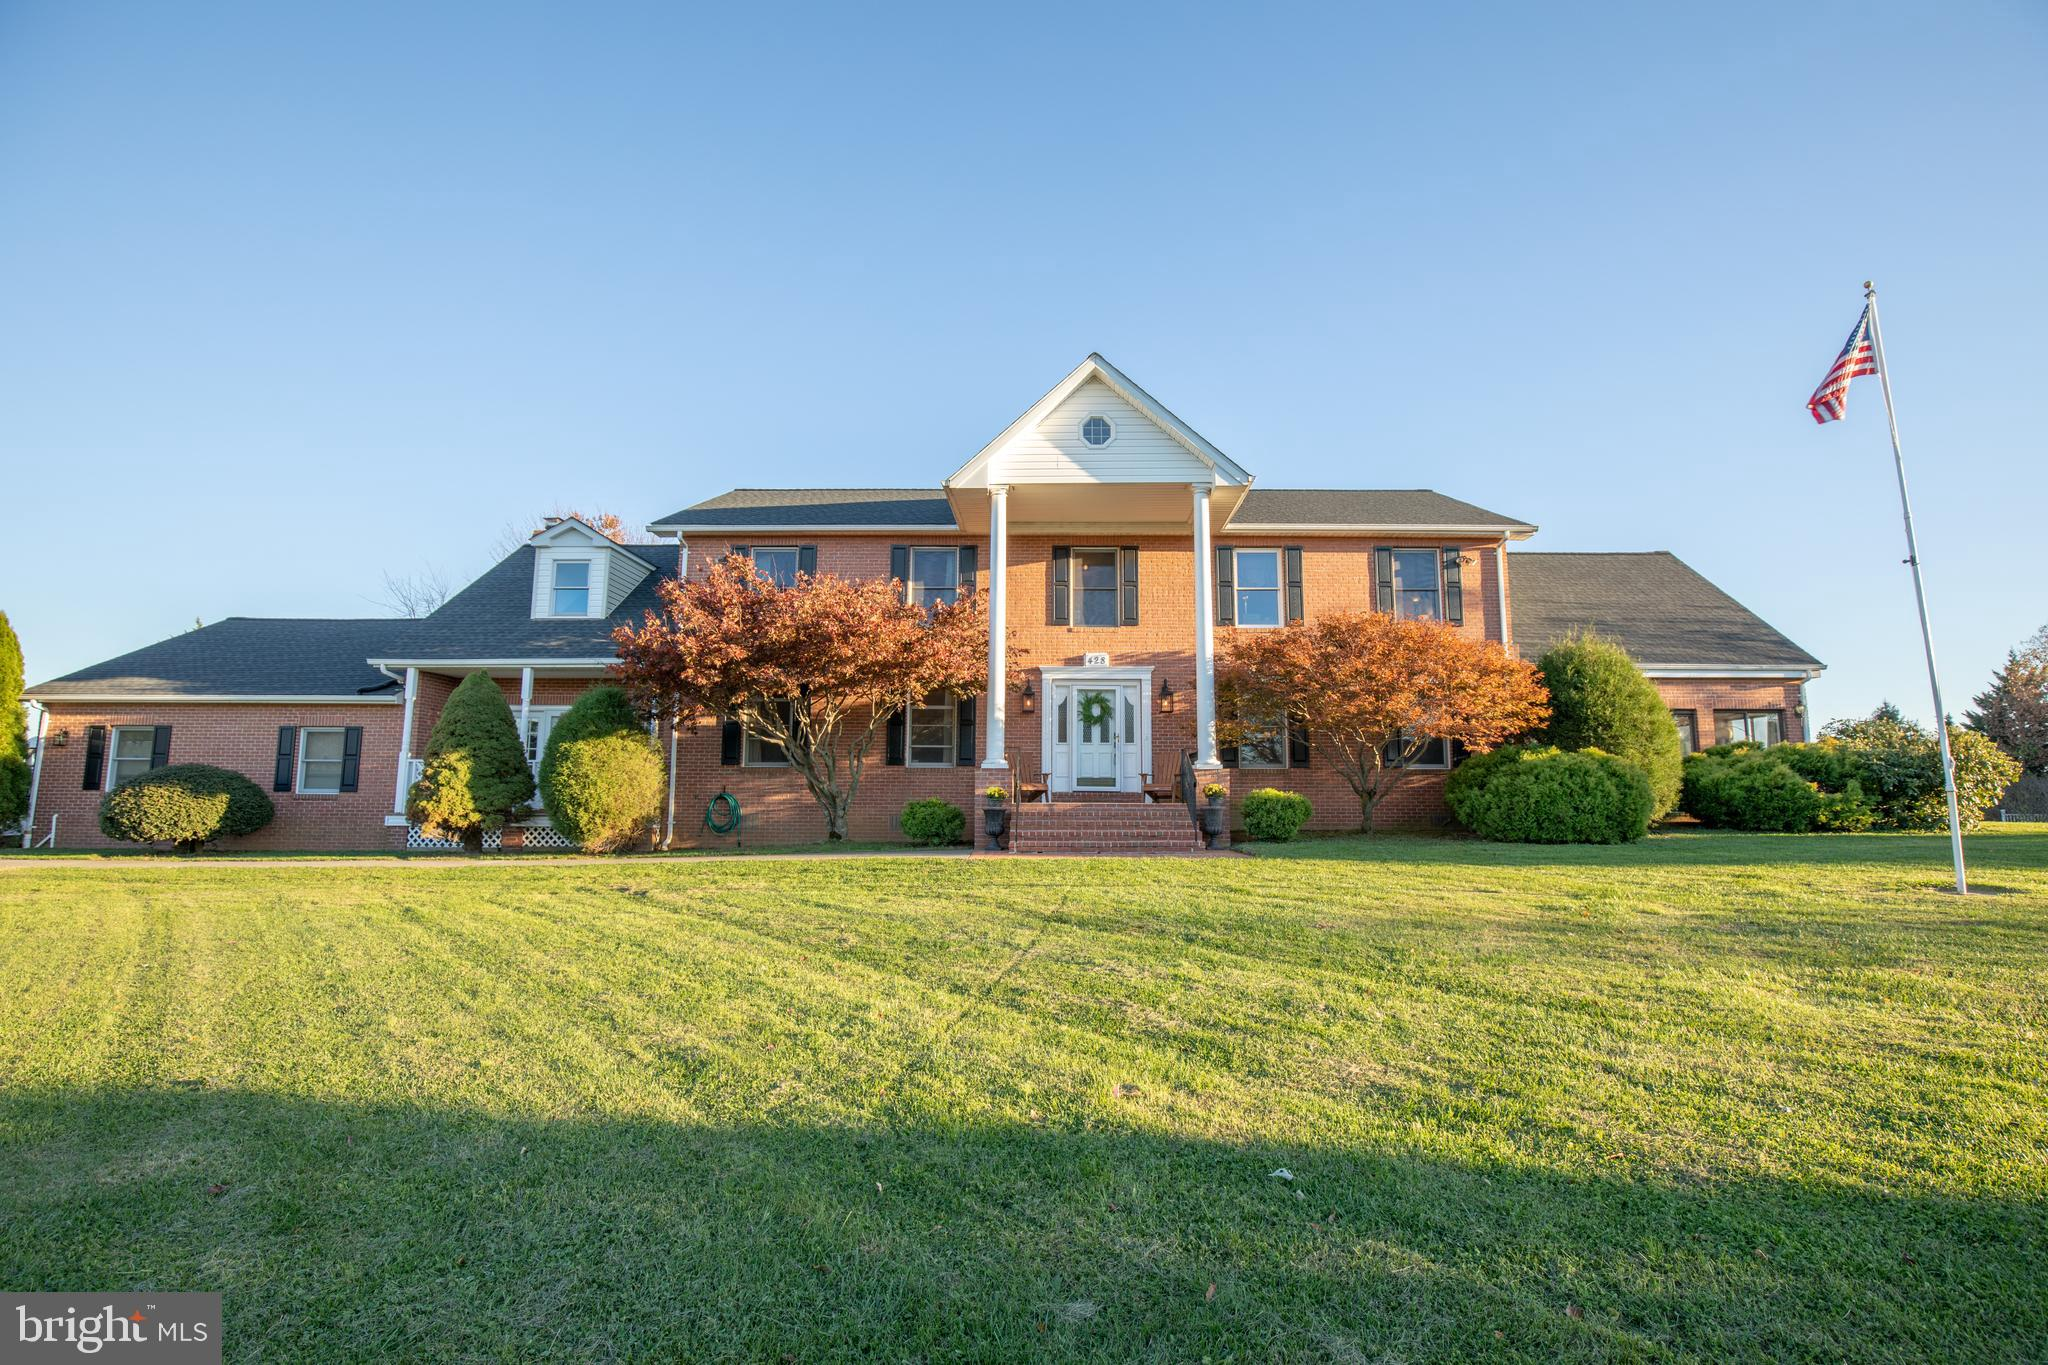 428 Grouse Knl, Summit Point, WV, 25446